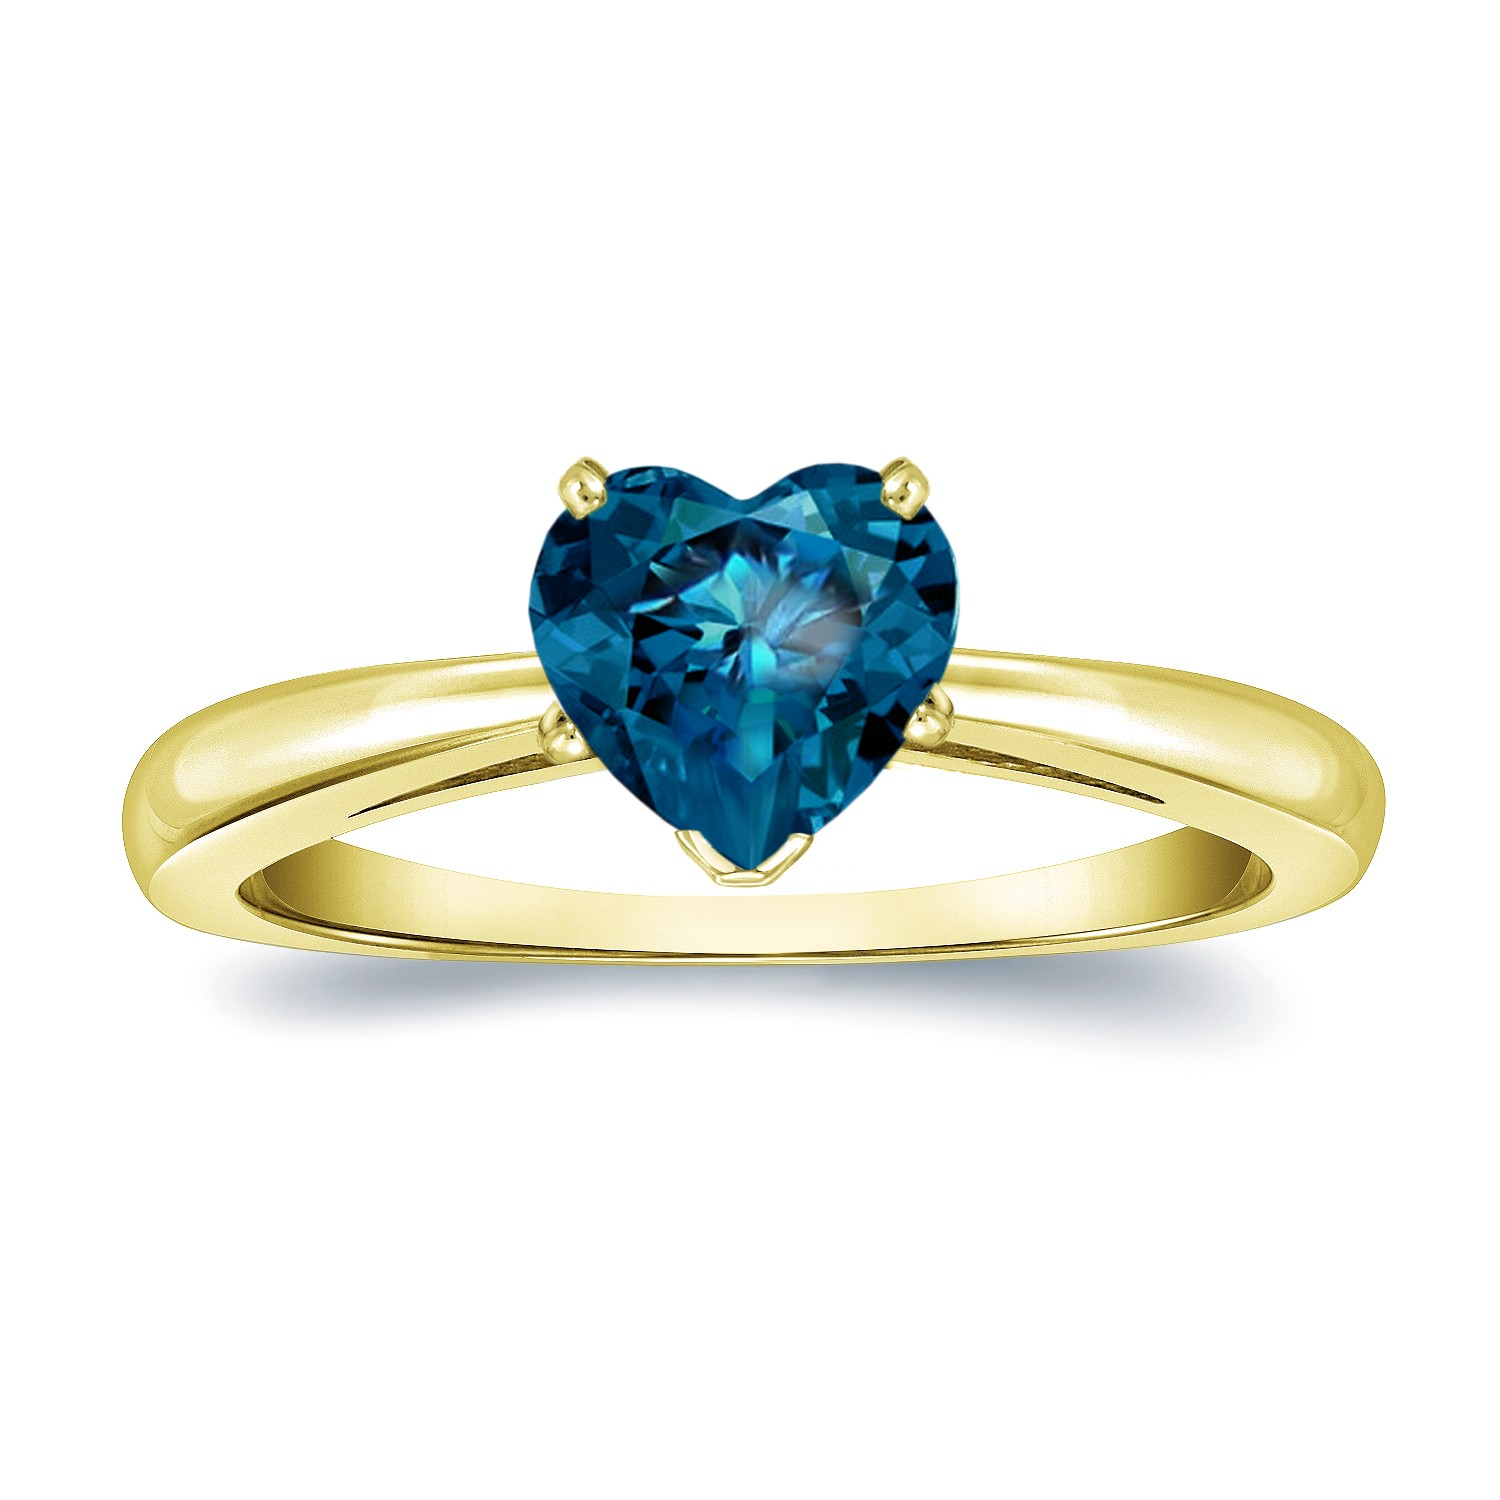 Certified 14k Yellow Gold Heart Shape Blue Diamond Solitaire Ring 1.00 ct. tw. (Blue, SI1-SI2)